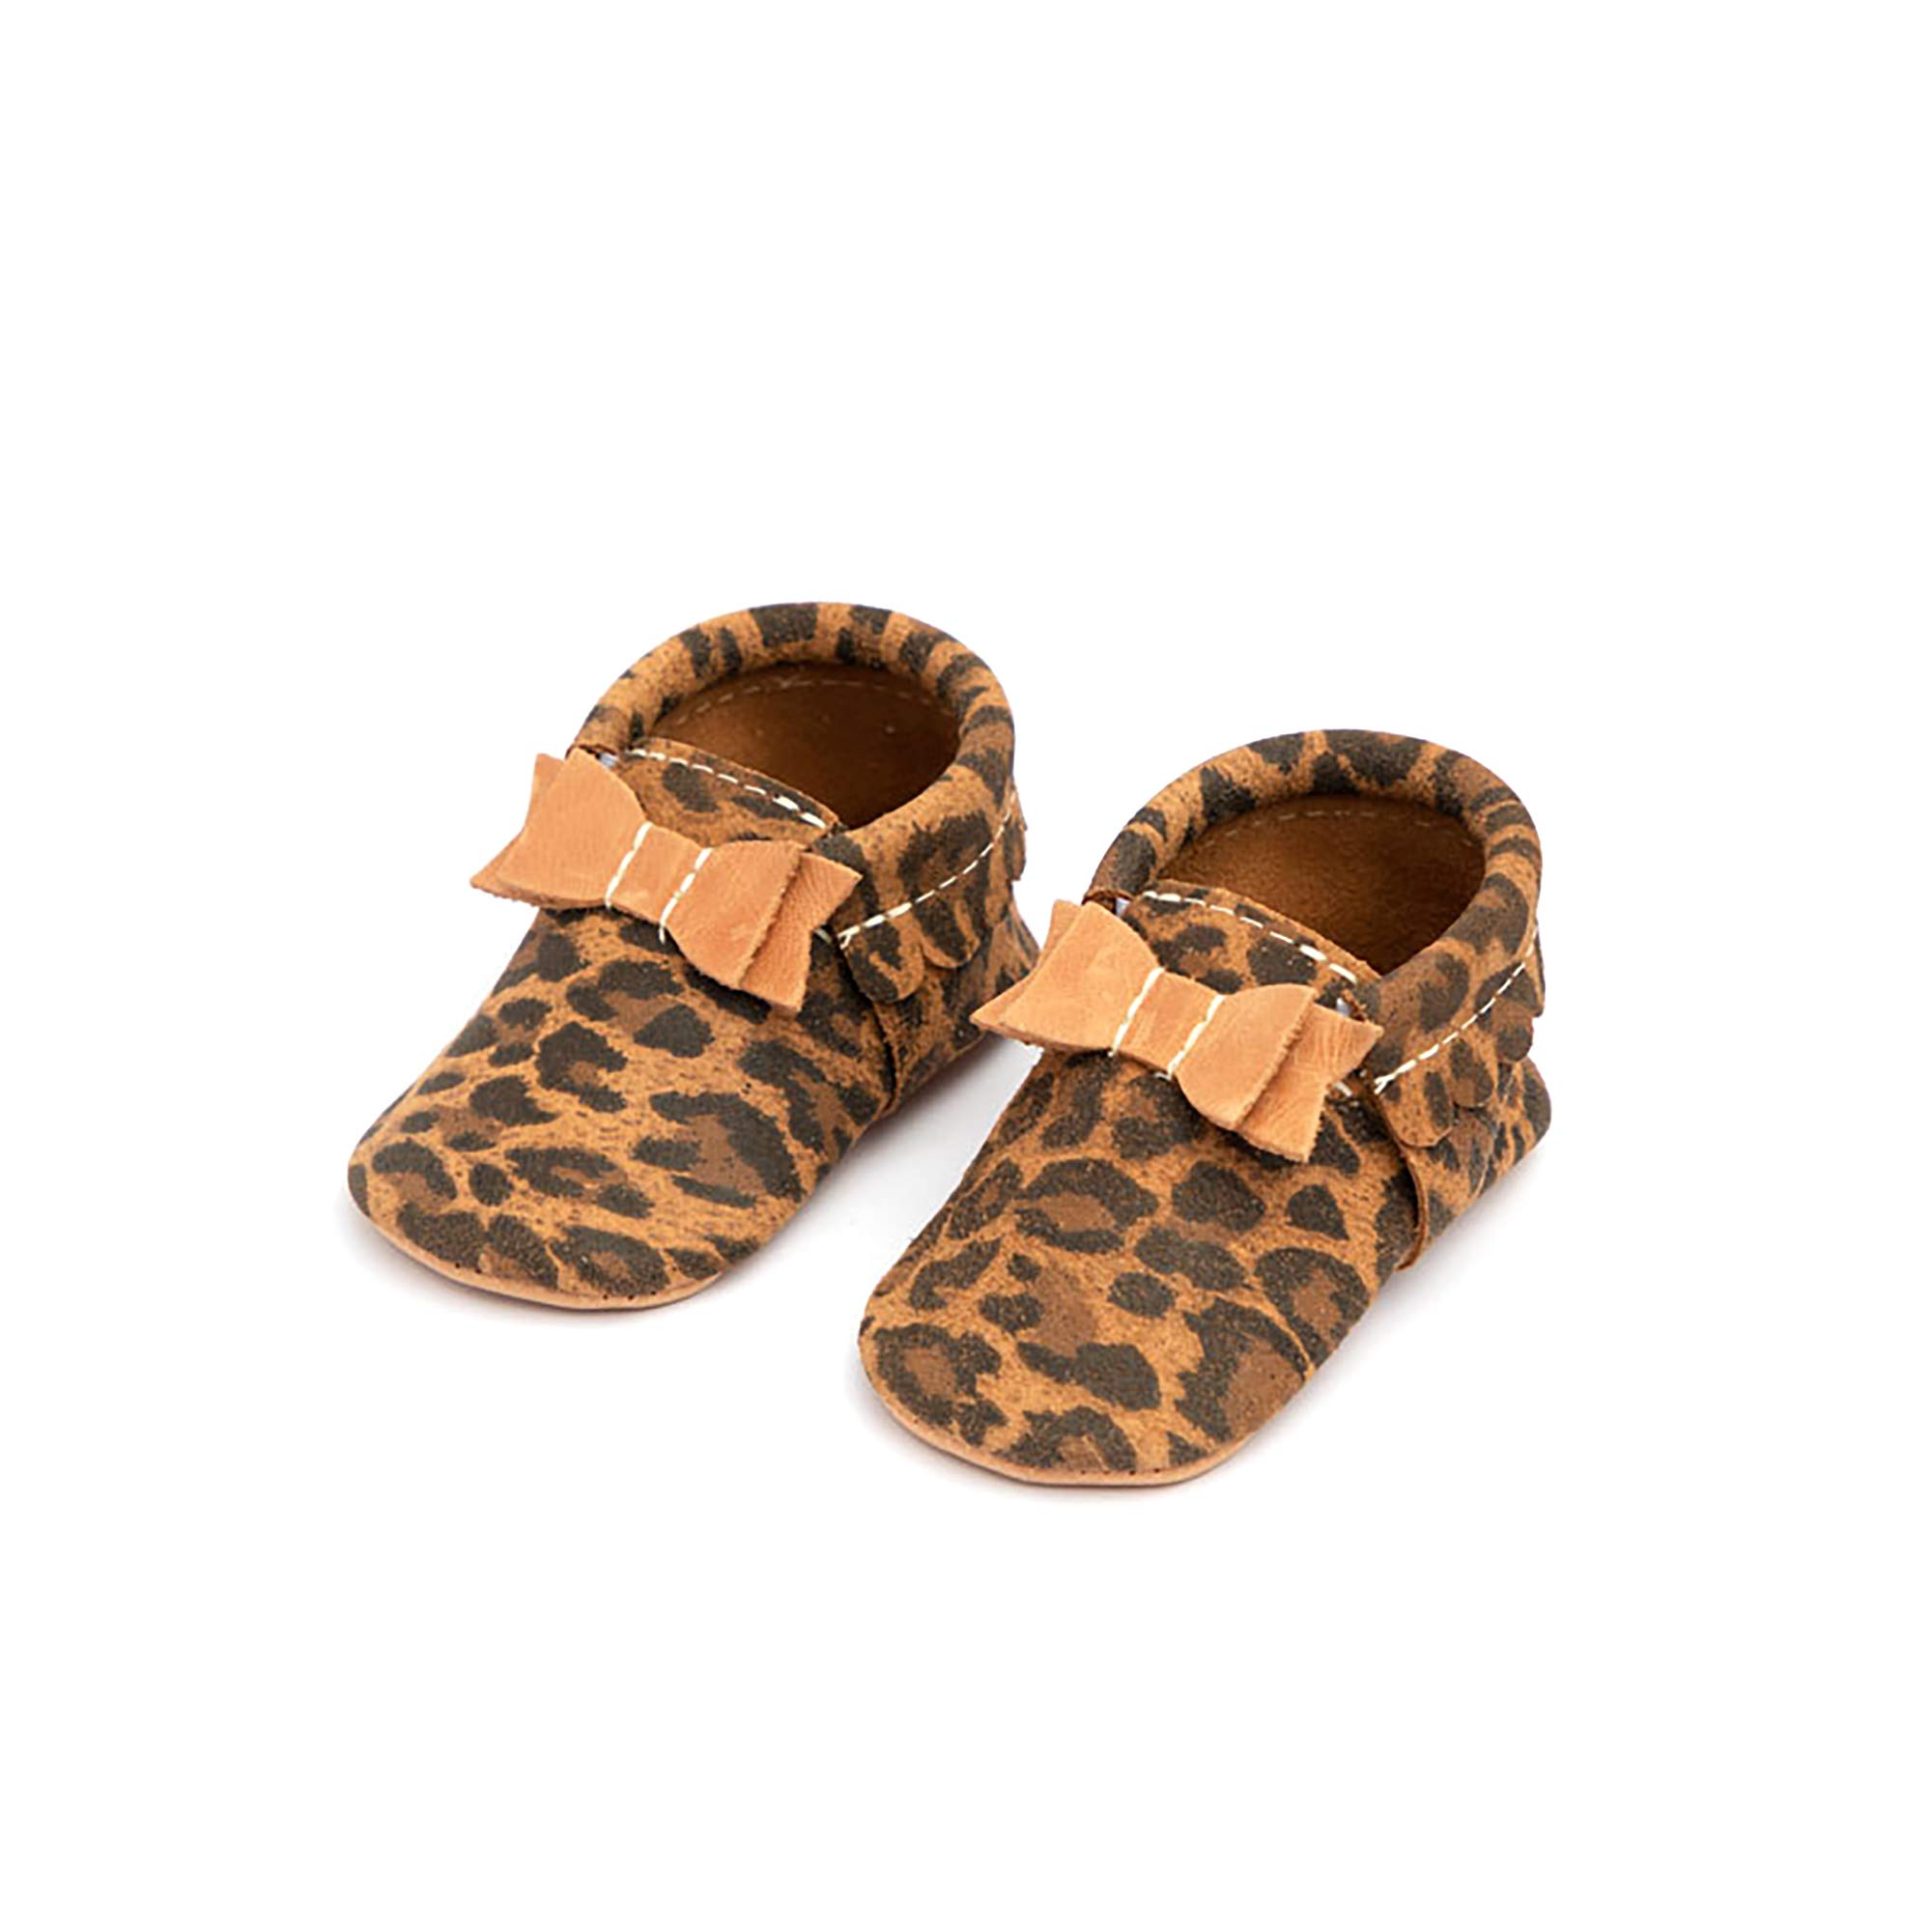 Freshly Picked - Soft Sole Leather Bow Moccasins - Baby Girl Shoes - Size 4 Leopard Print by Freshly Picked